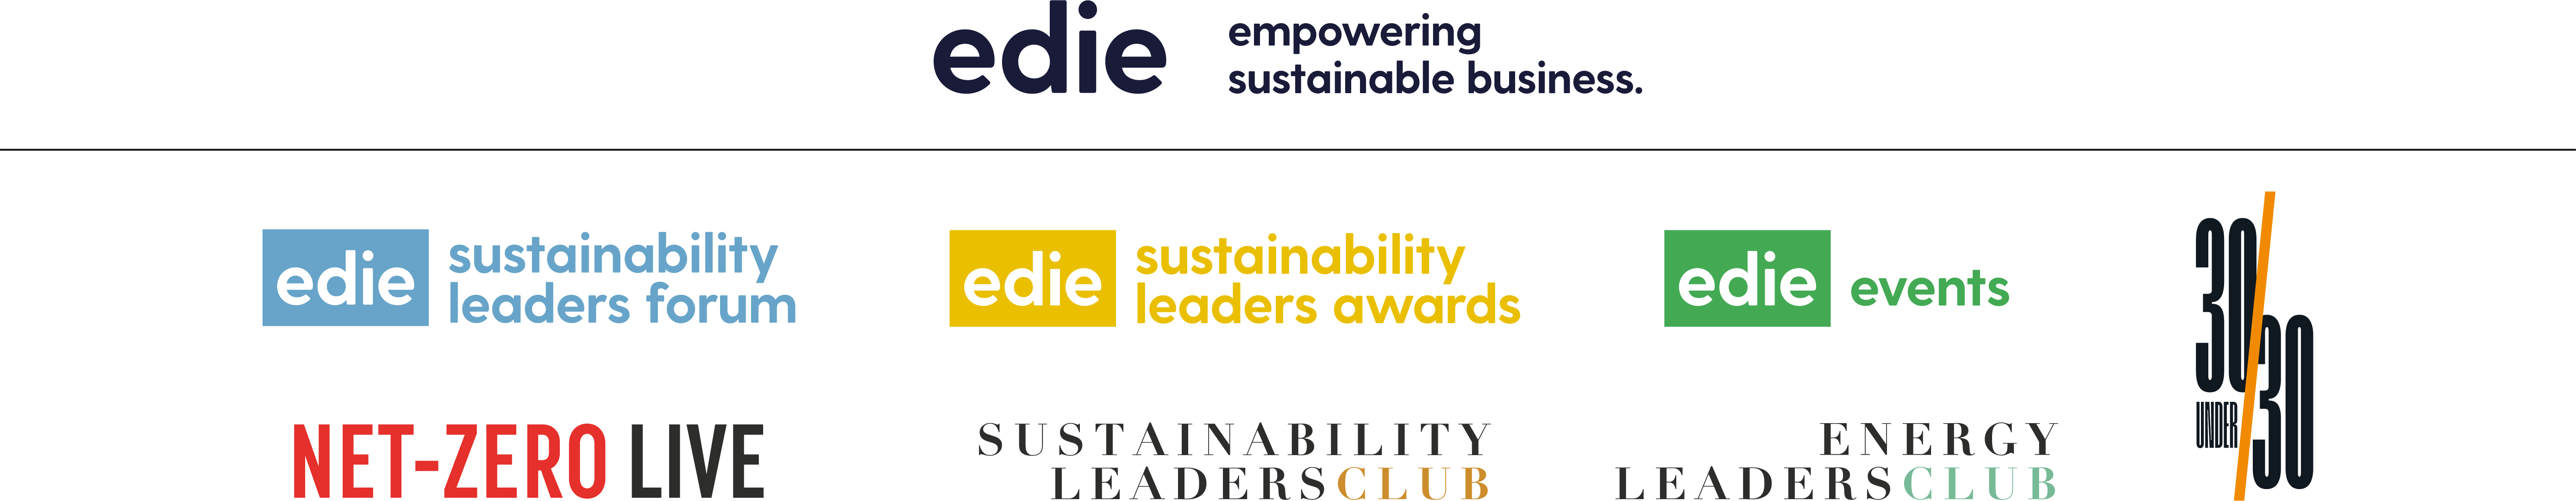 edie - empowering sustainable business